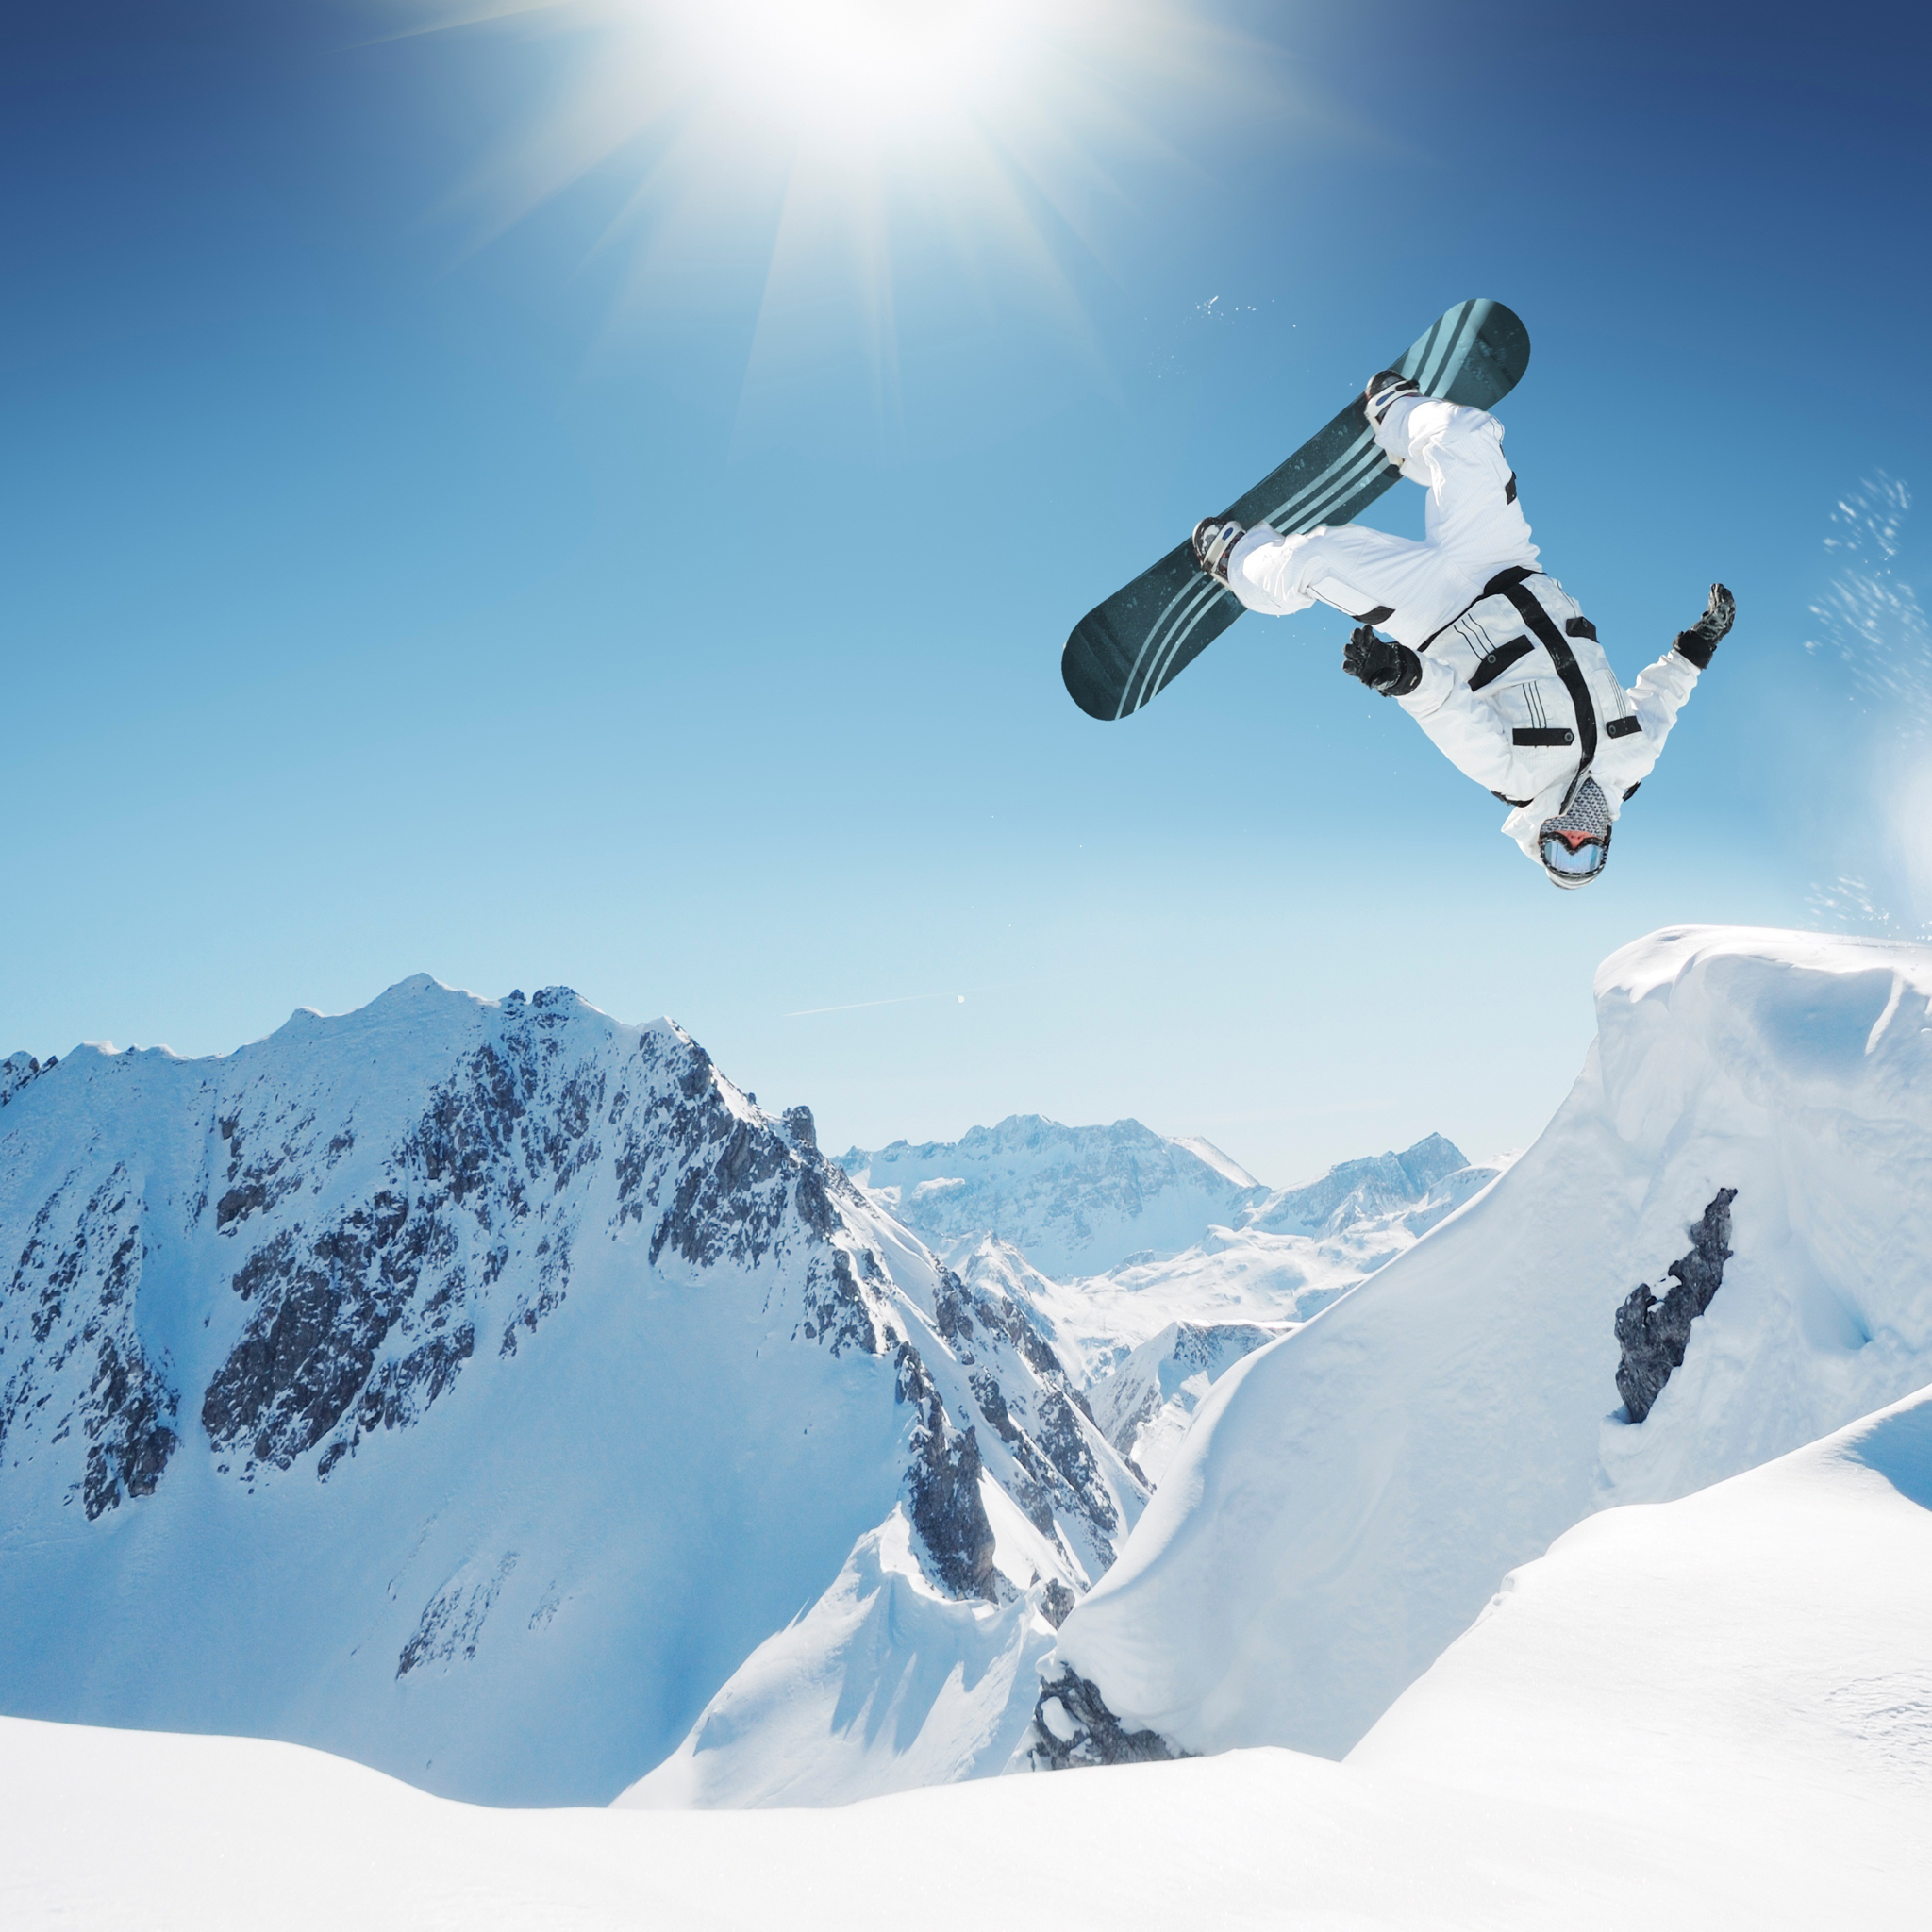 Snowboard-3Wallpapers-iPad-Retina